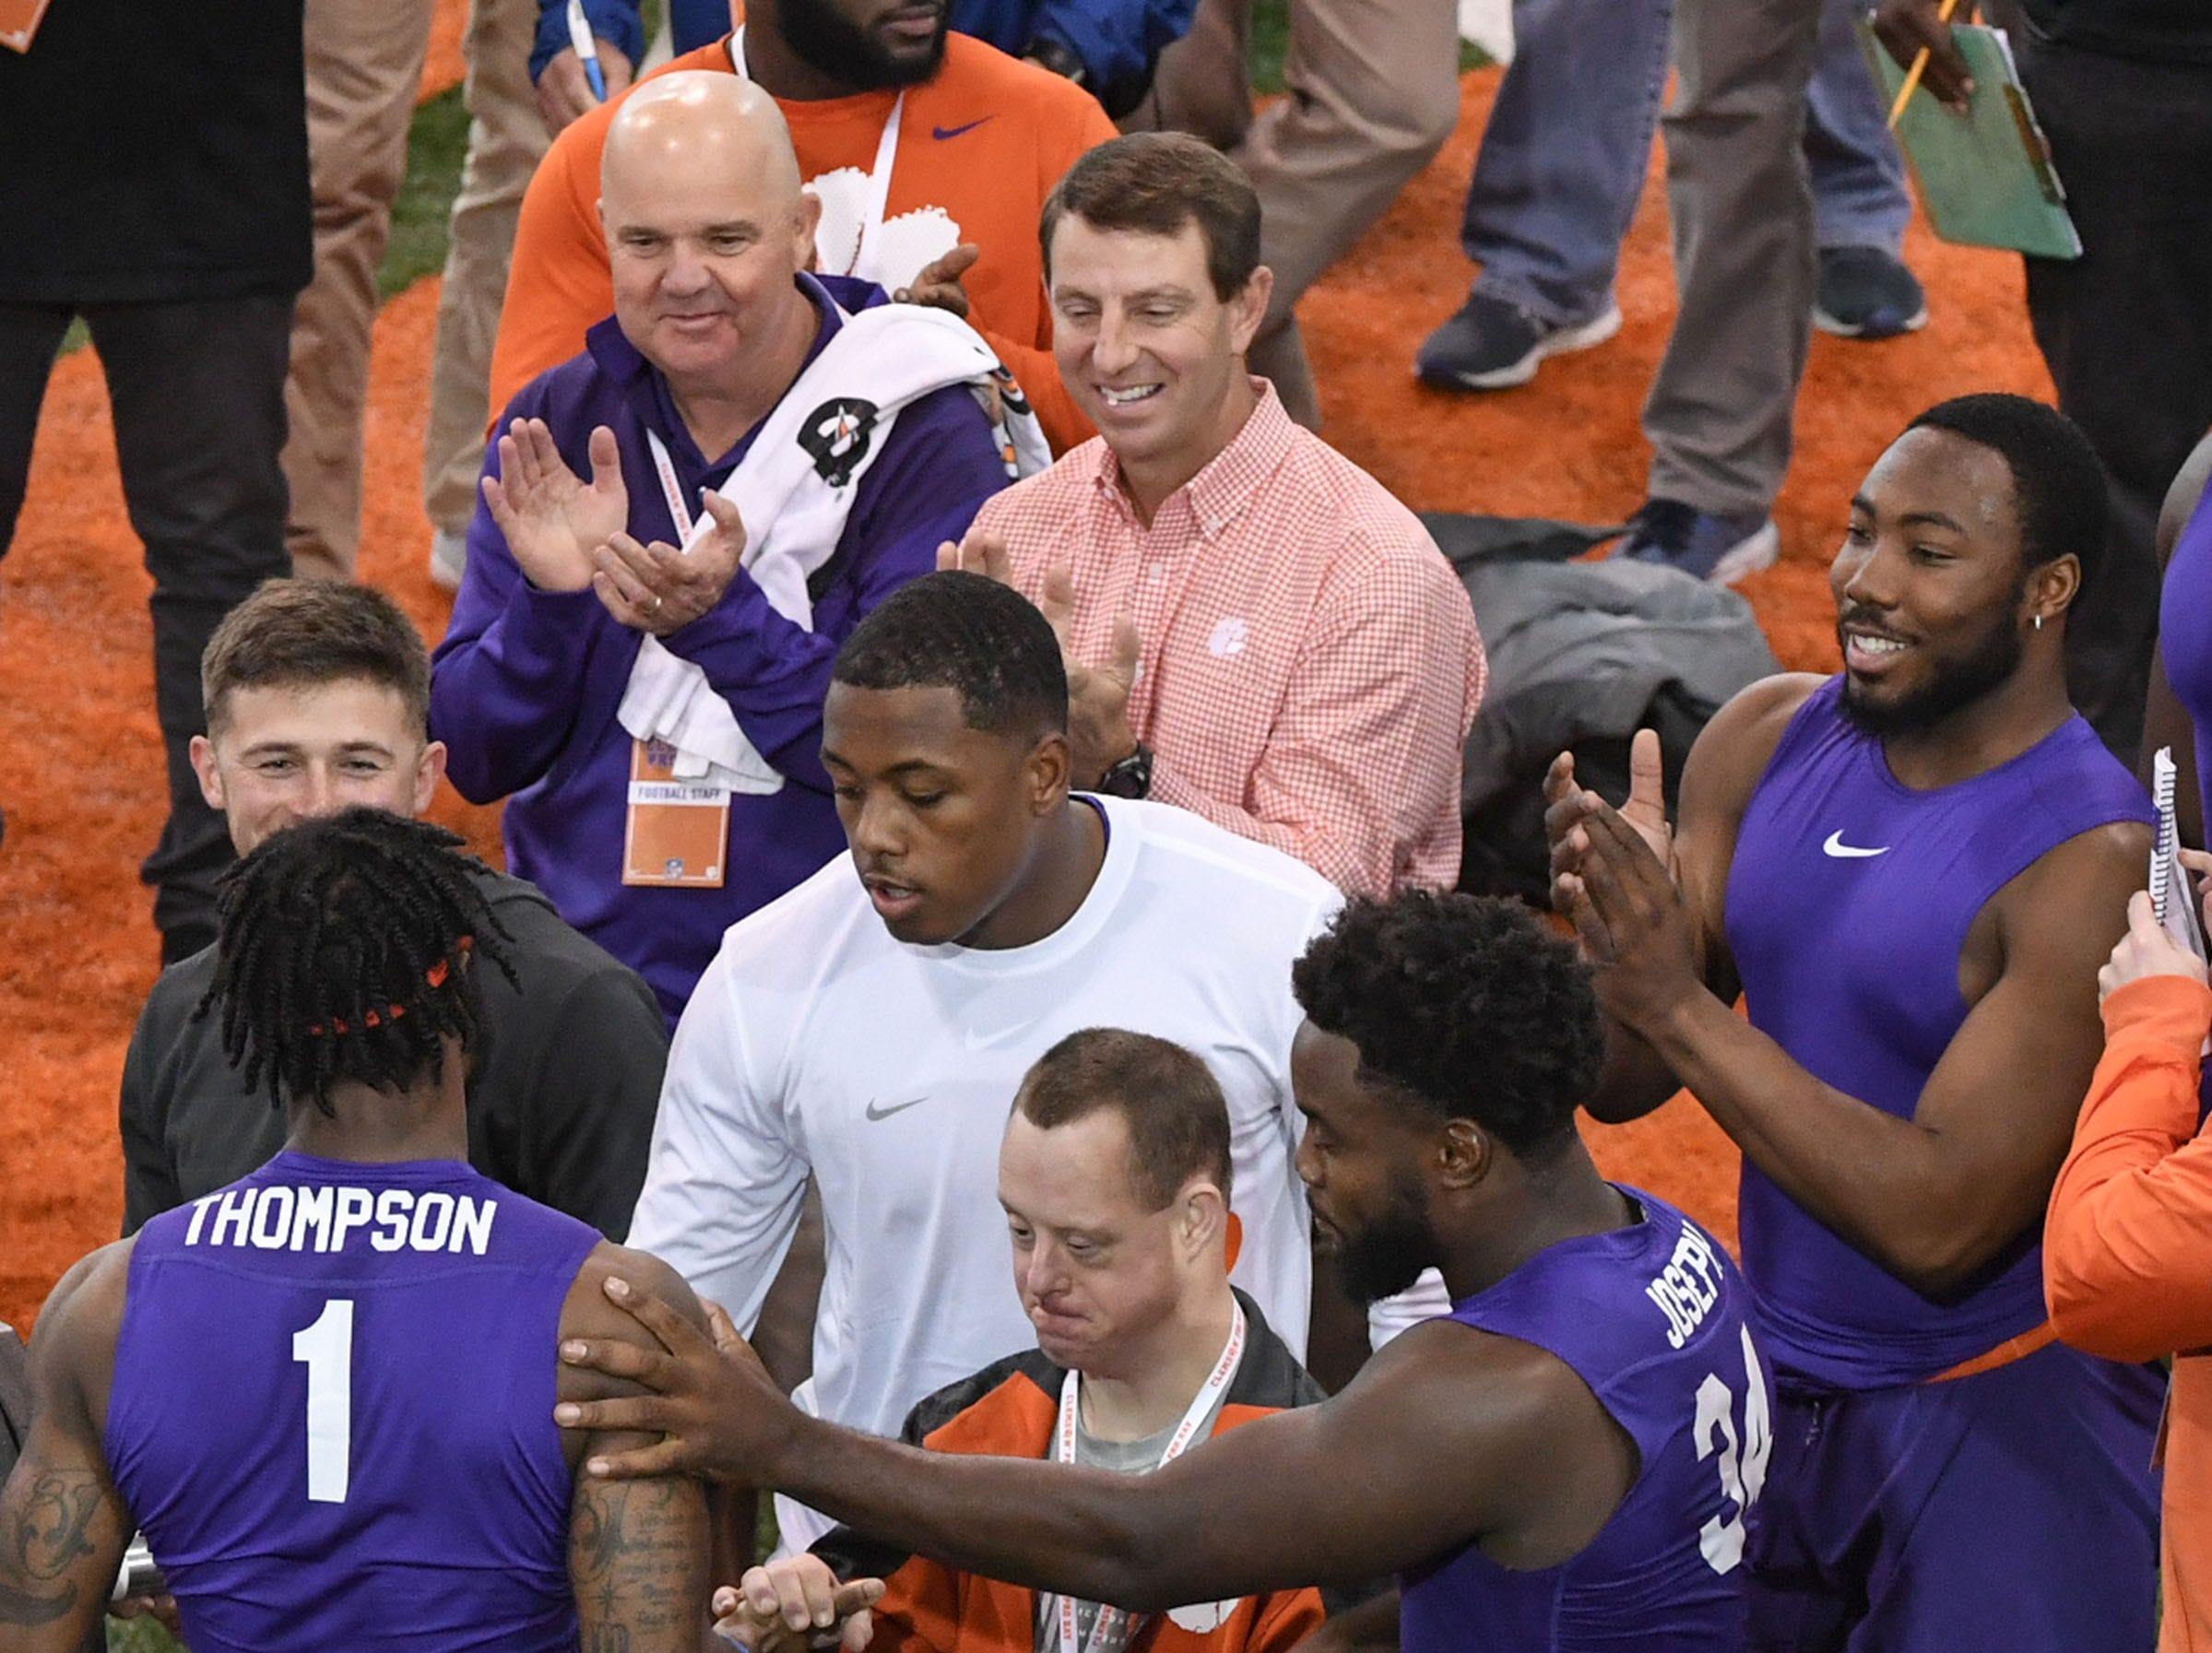 Wide receiver Trevion Thompson is congratulated after testing in the bench press during Clemson Pro Day at the Poe Indoor Facility in Clemson, S.C. Thursday, March 14, 2019. Thompson had 16 reps of 225 pounds.